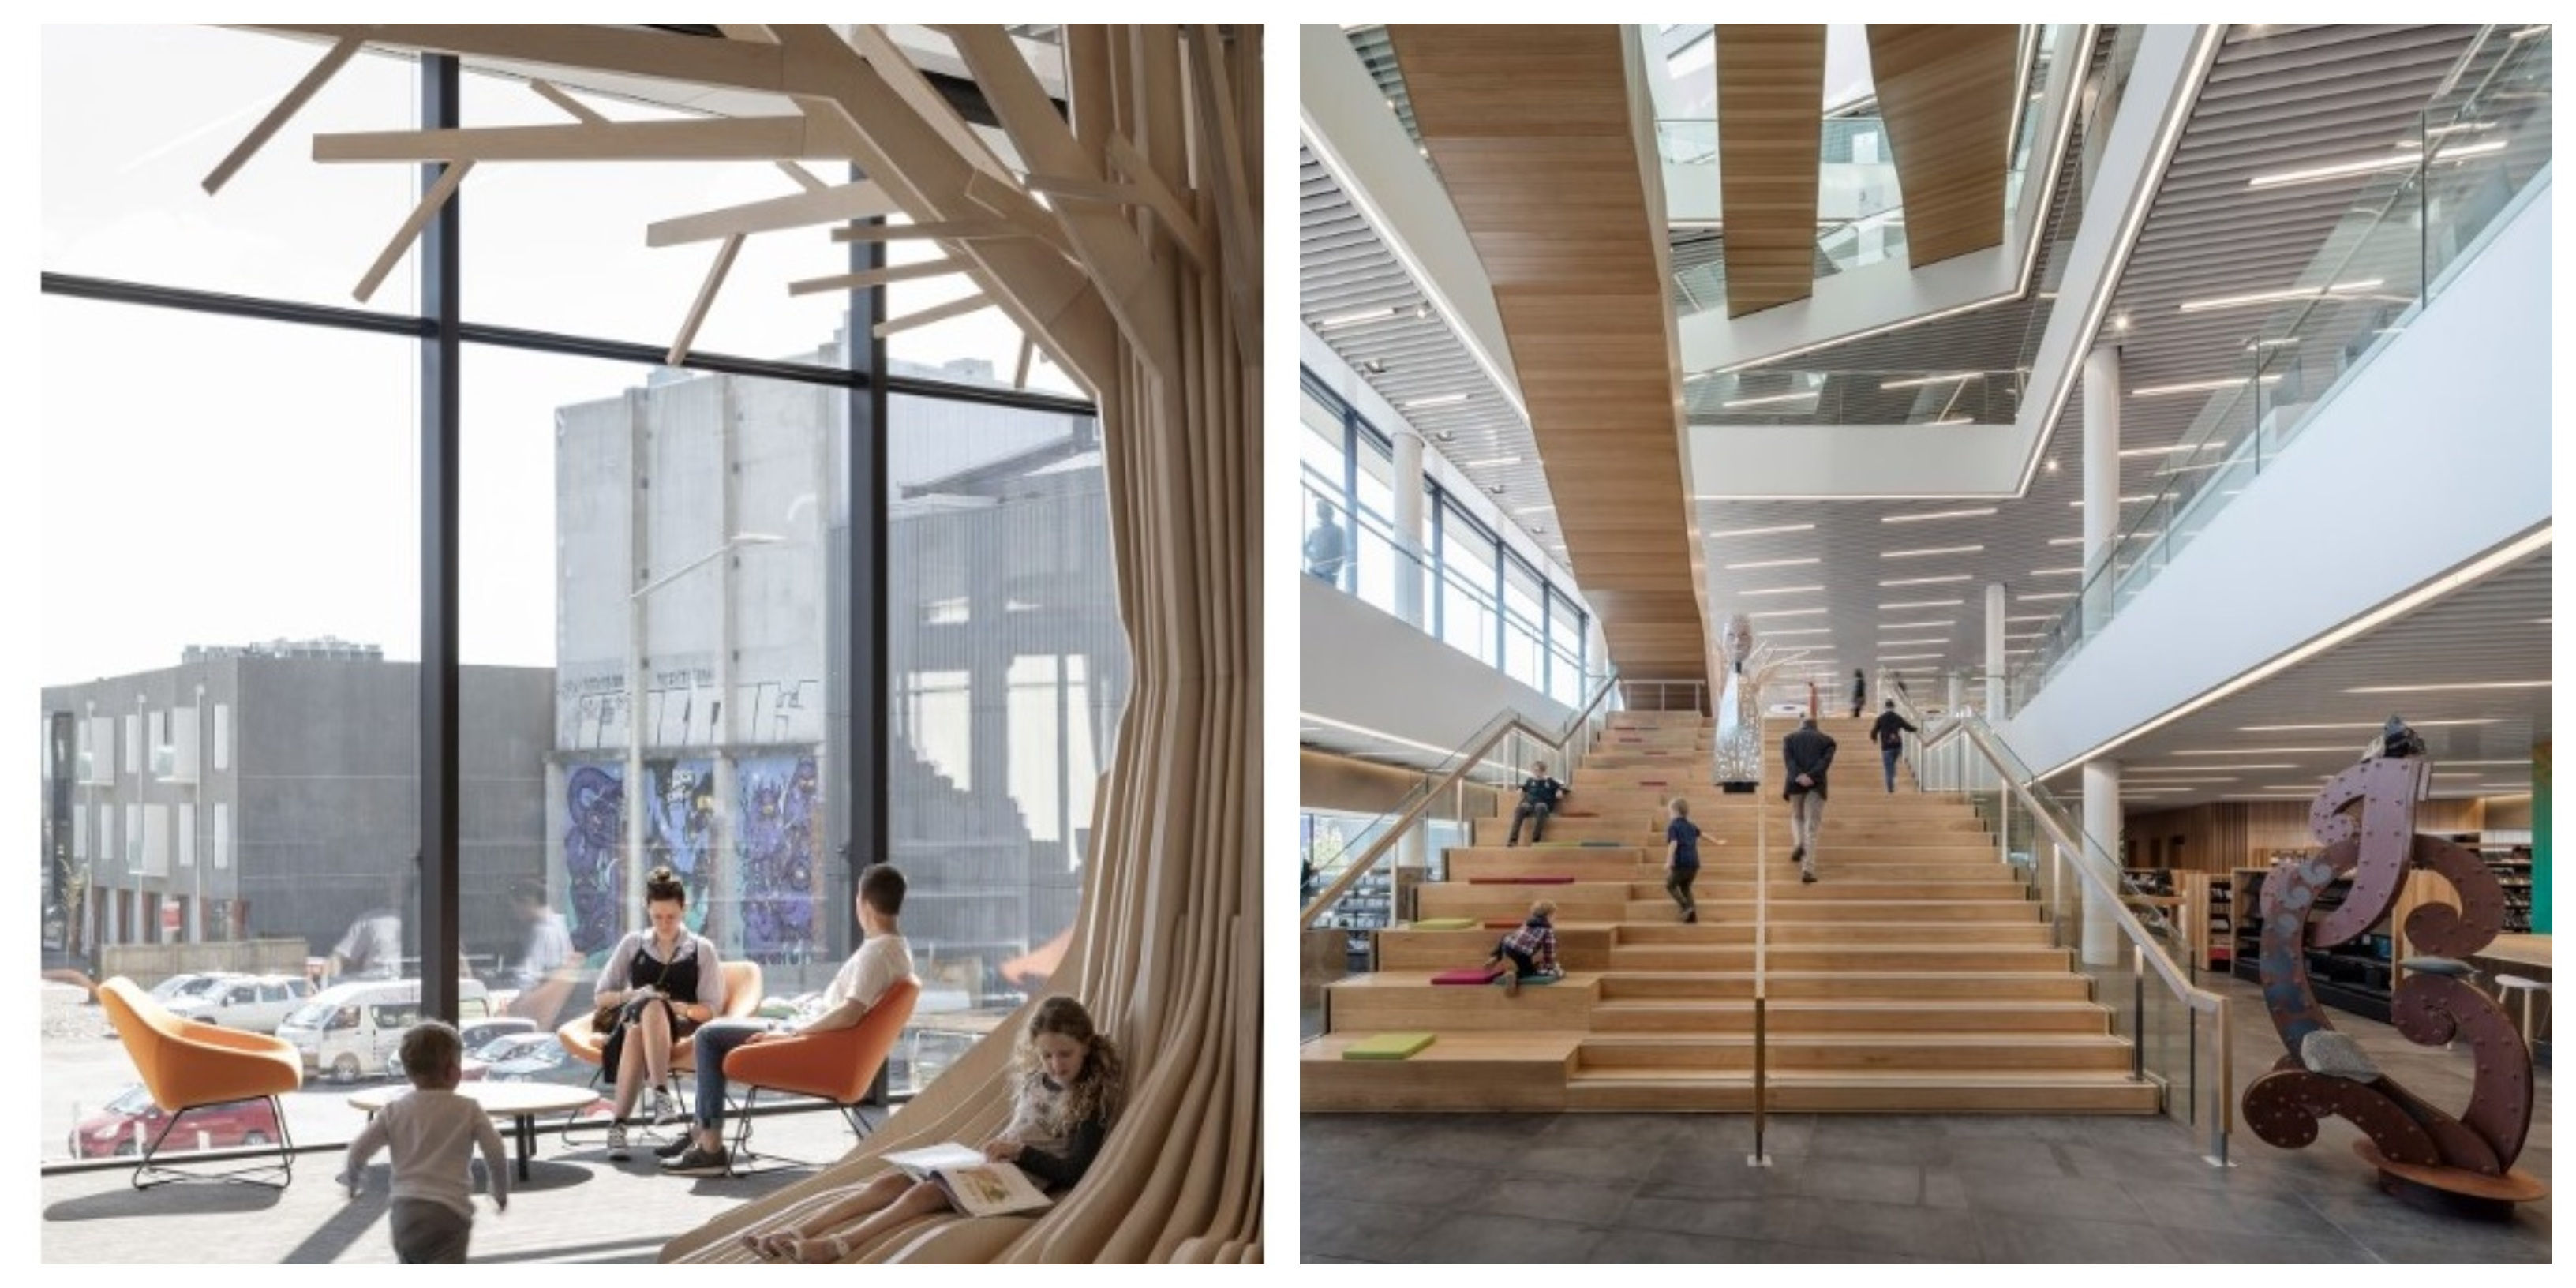 Tūranga is the largest public library in New Zealand's South Island.